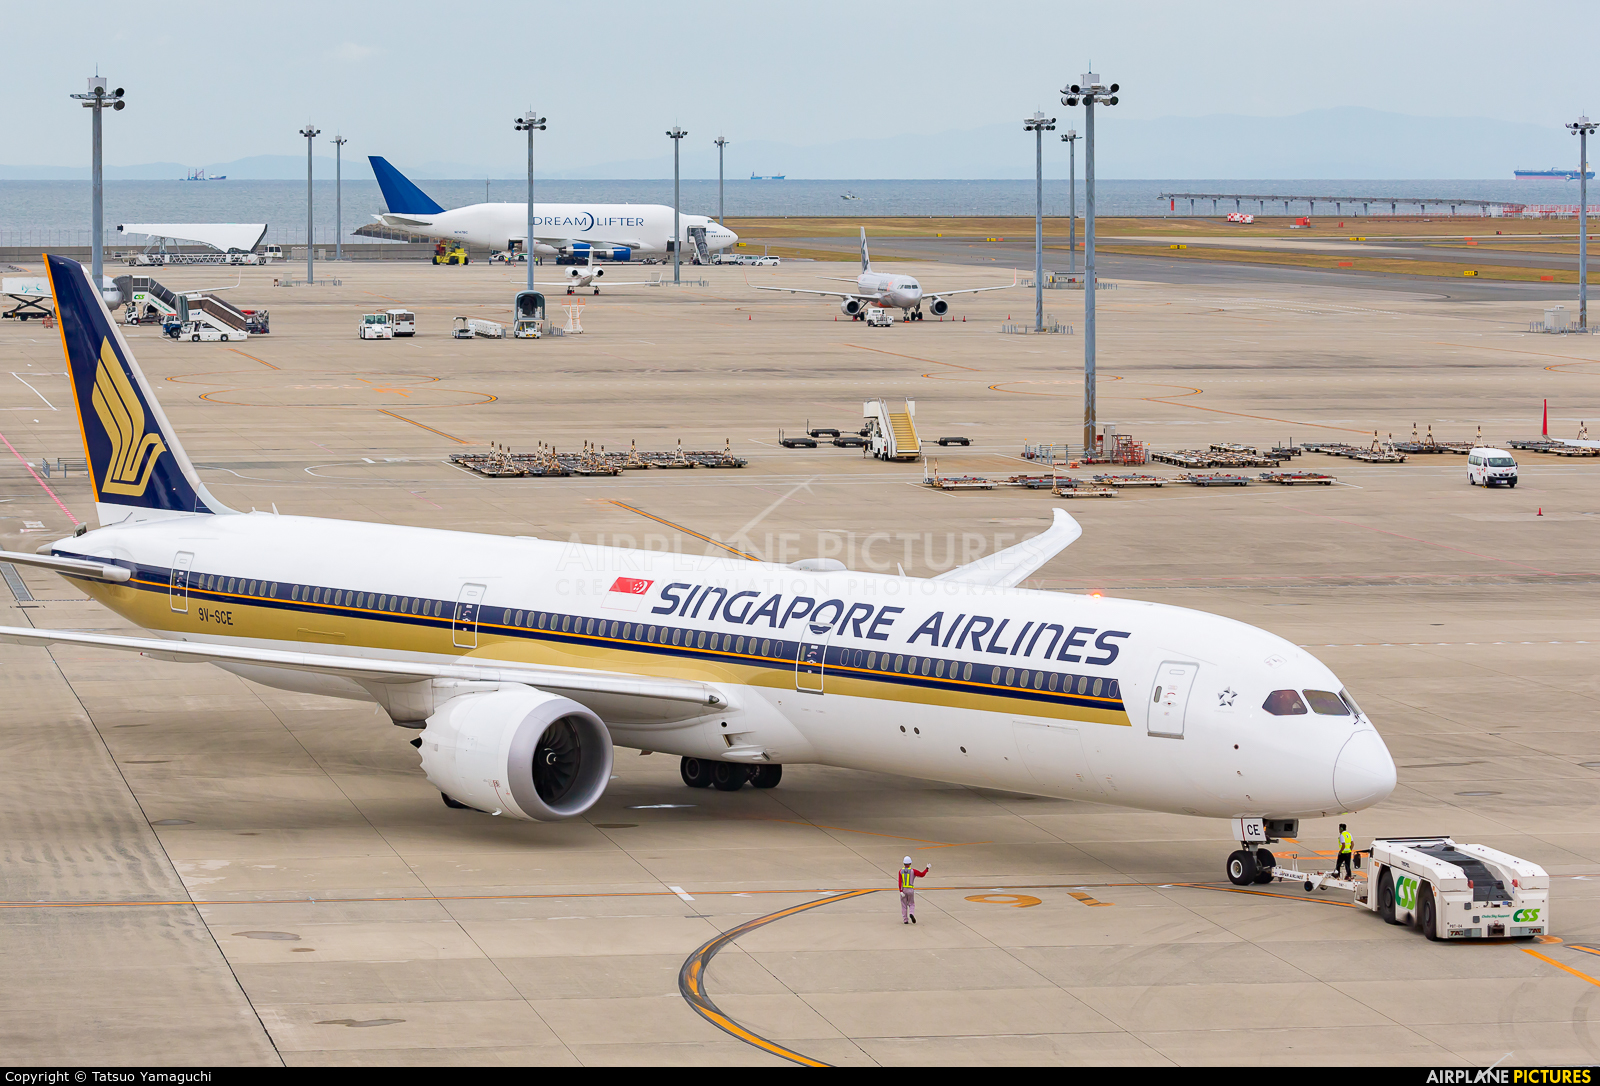 Singapore Airlines 9V-SCE aircraft at Chubu Centrair Intl